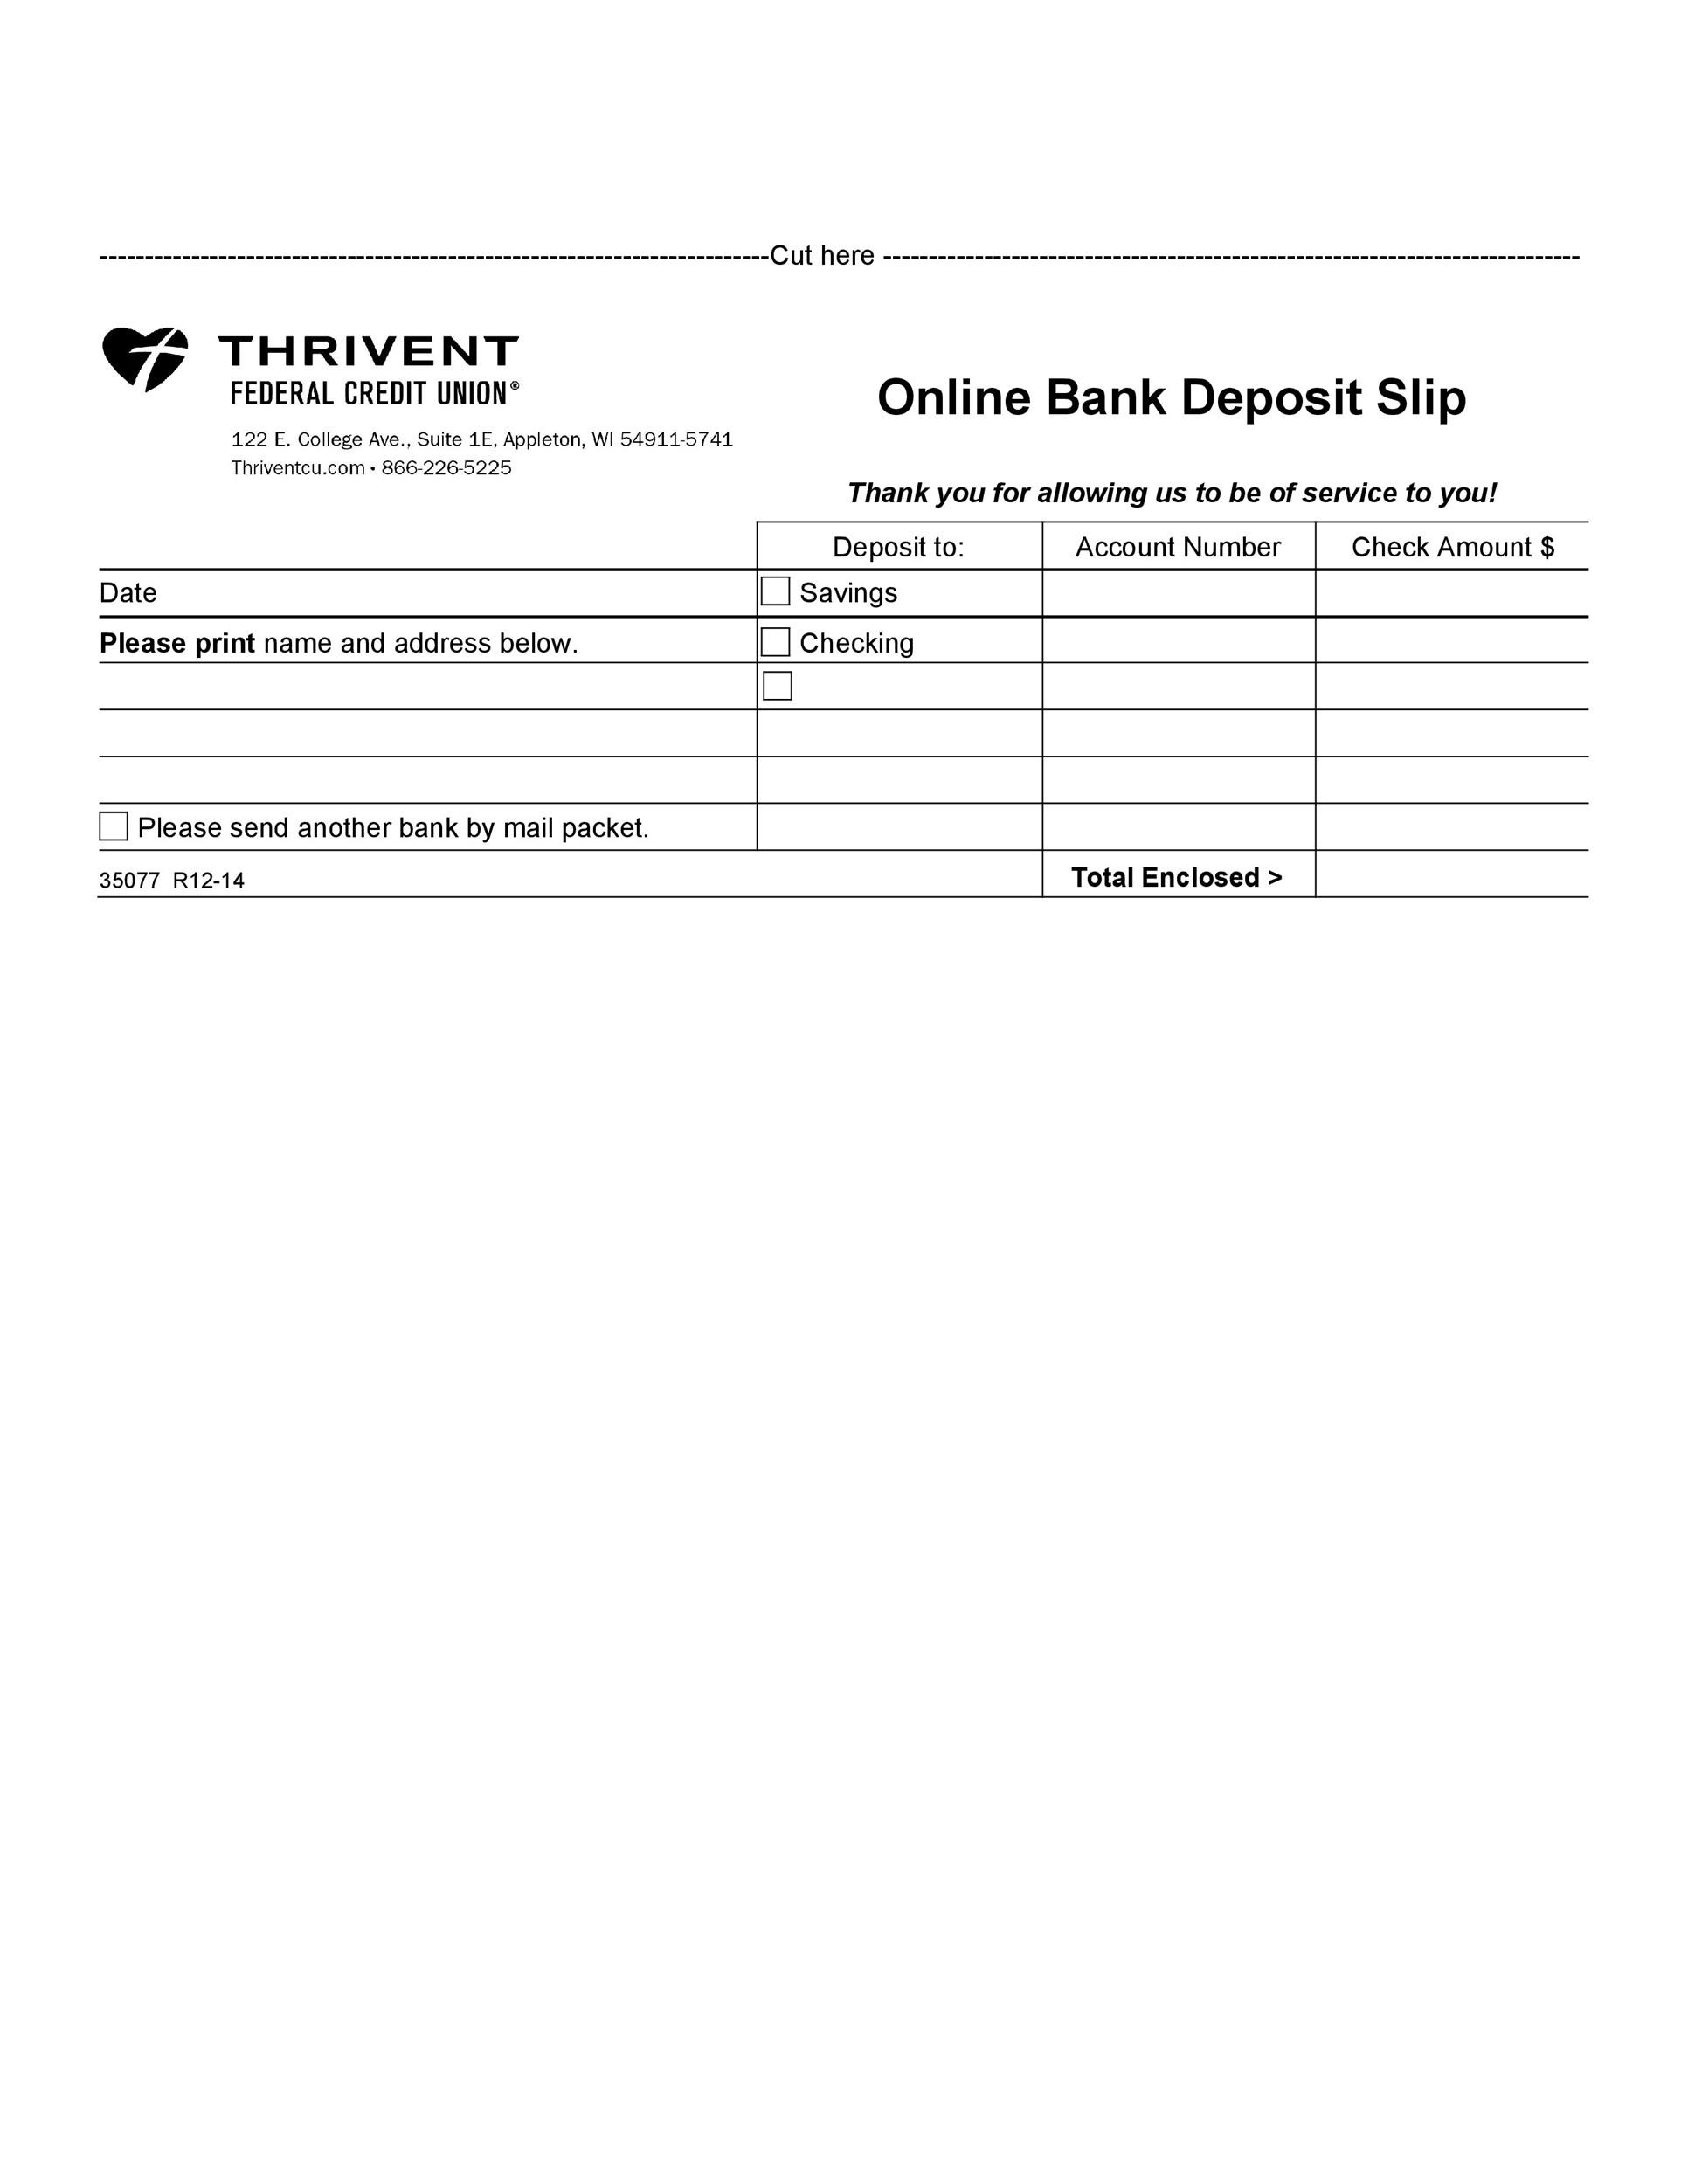 37 Bank Deposit Slip Templates & Examples - Template Lab